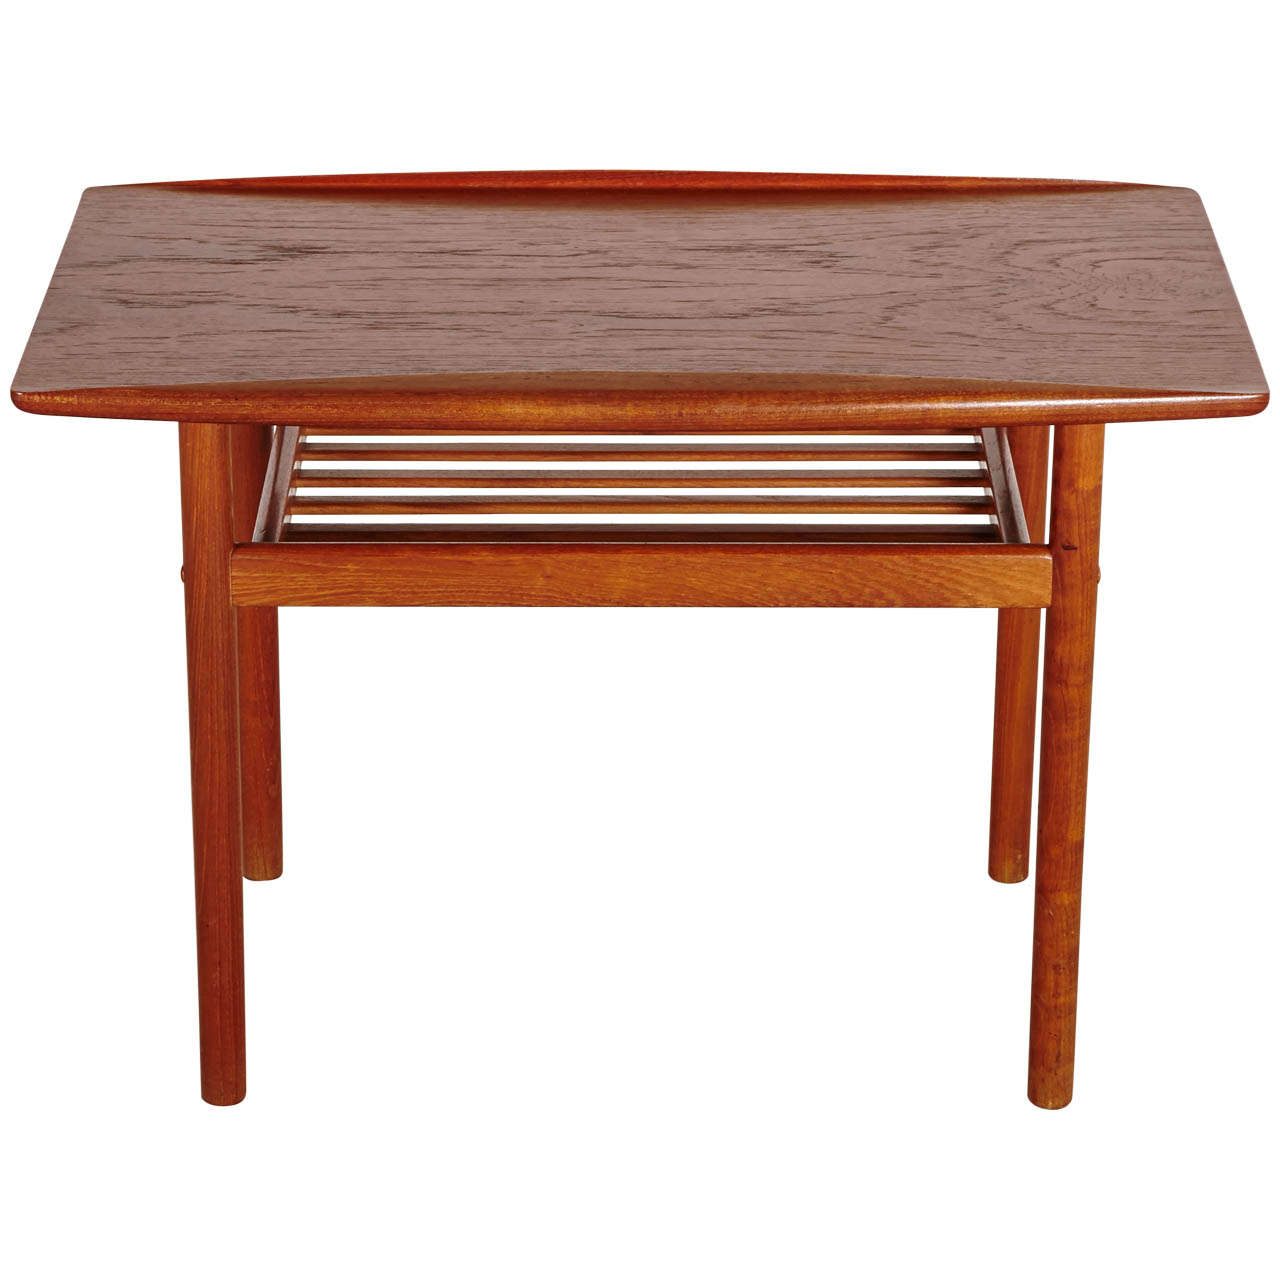 1960 39 s teak wood danish design coffee table by grete jalk for Scandinavian design coffee table